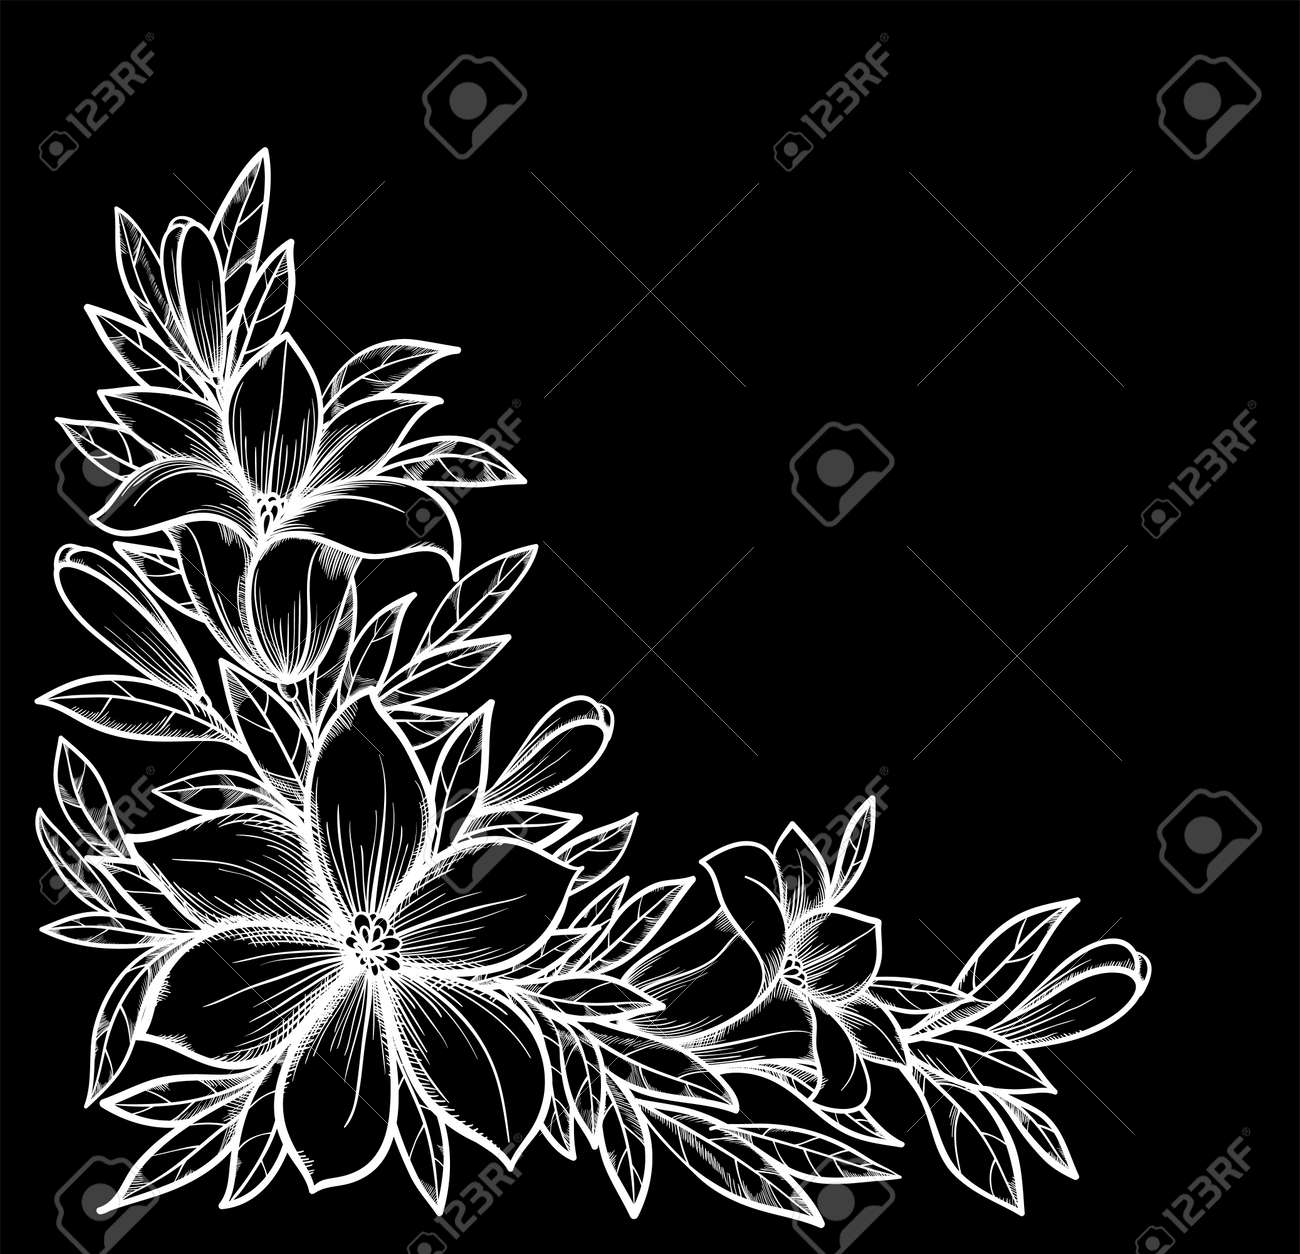 Beautiful black and white branch with flowers background for beautiful black and white branch with flowers background for design for greeting card and invitation mightylinksfo